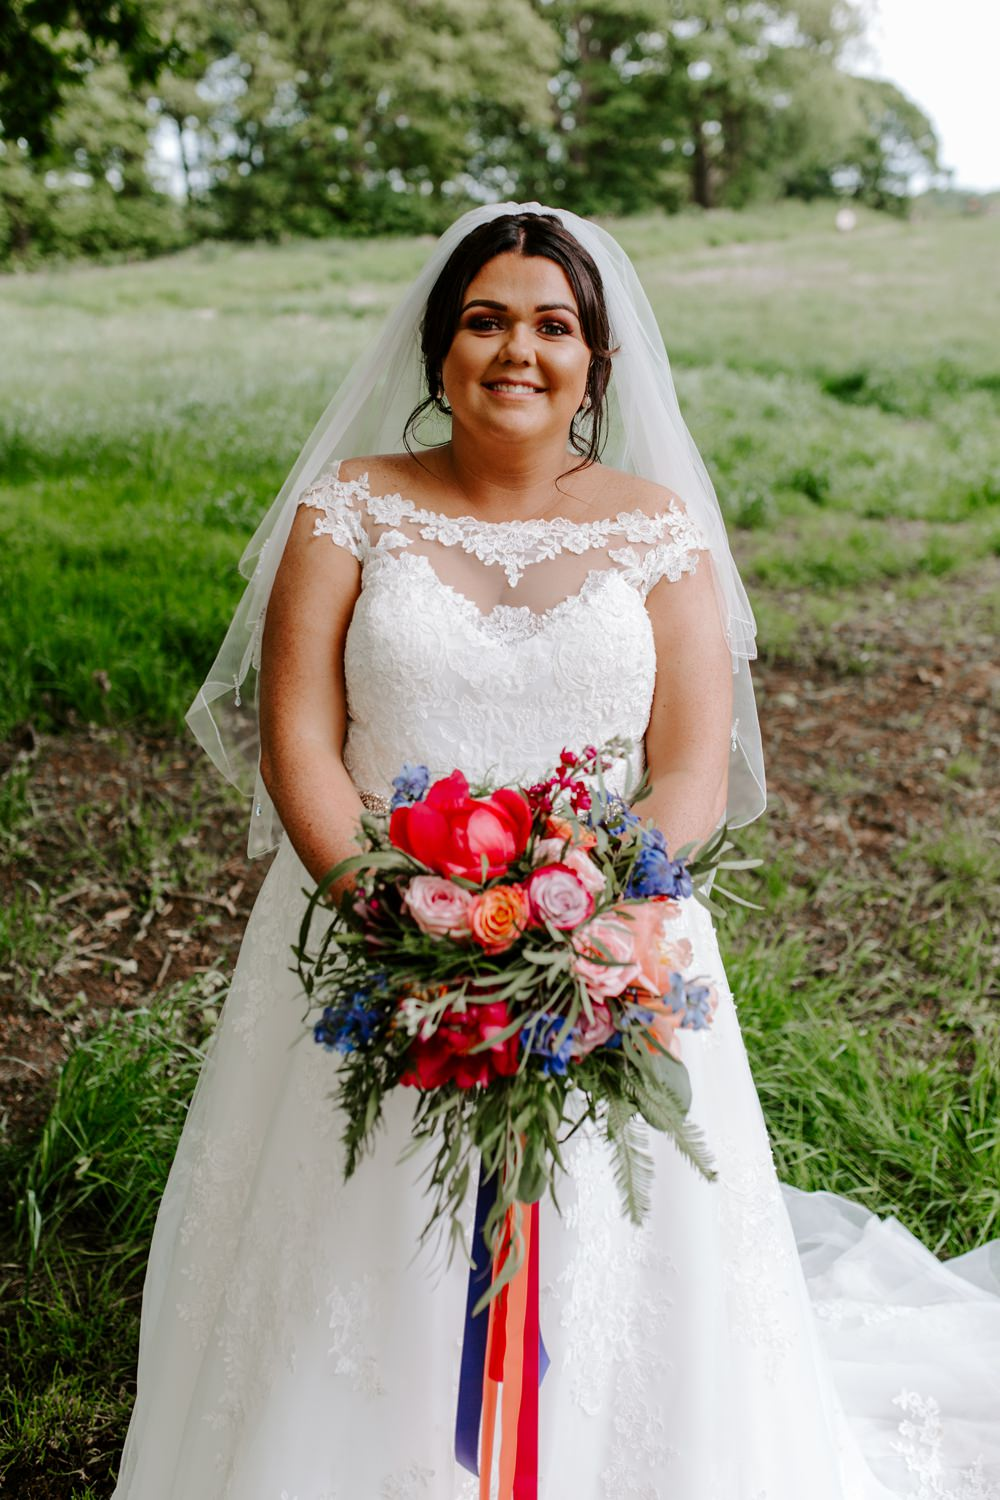 Bride Bridal Lace Dress Gown Sweetheart Neckline Boat Neck Veil Tipis Riley Green Wedding Jessica Isherwood Photography